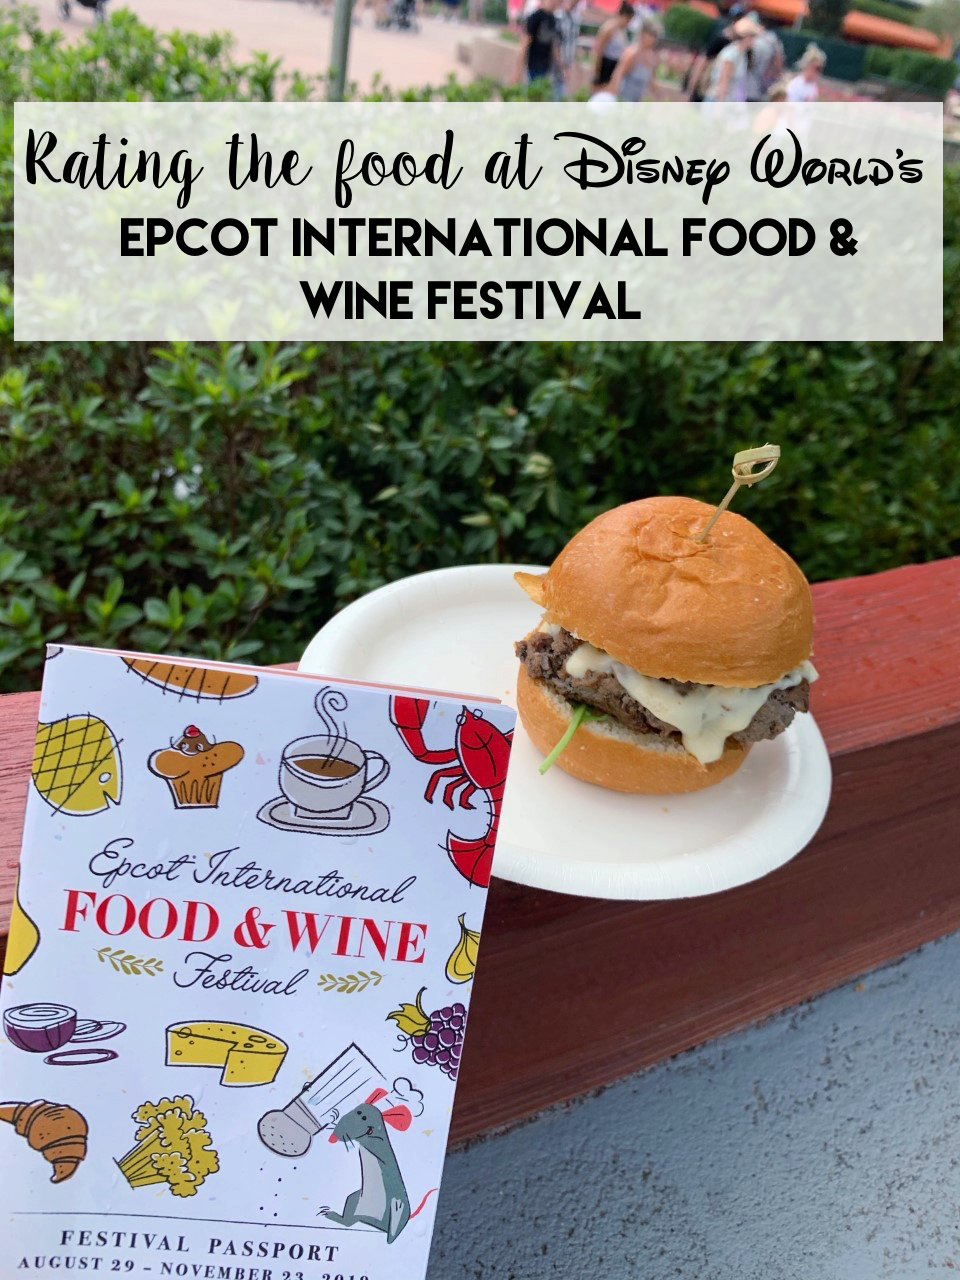 Rating the food at the Epcot International Food & Wine Festival